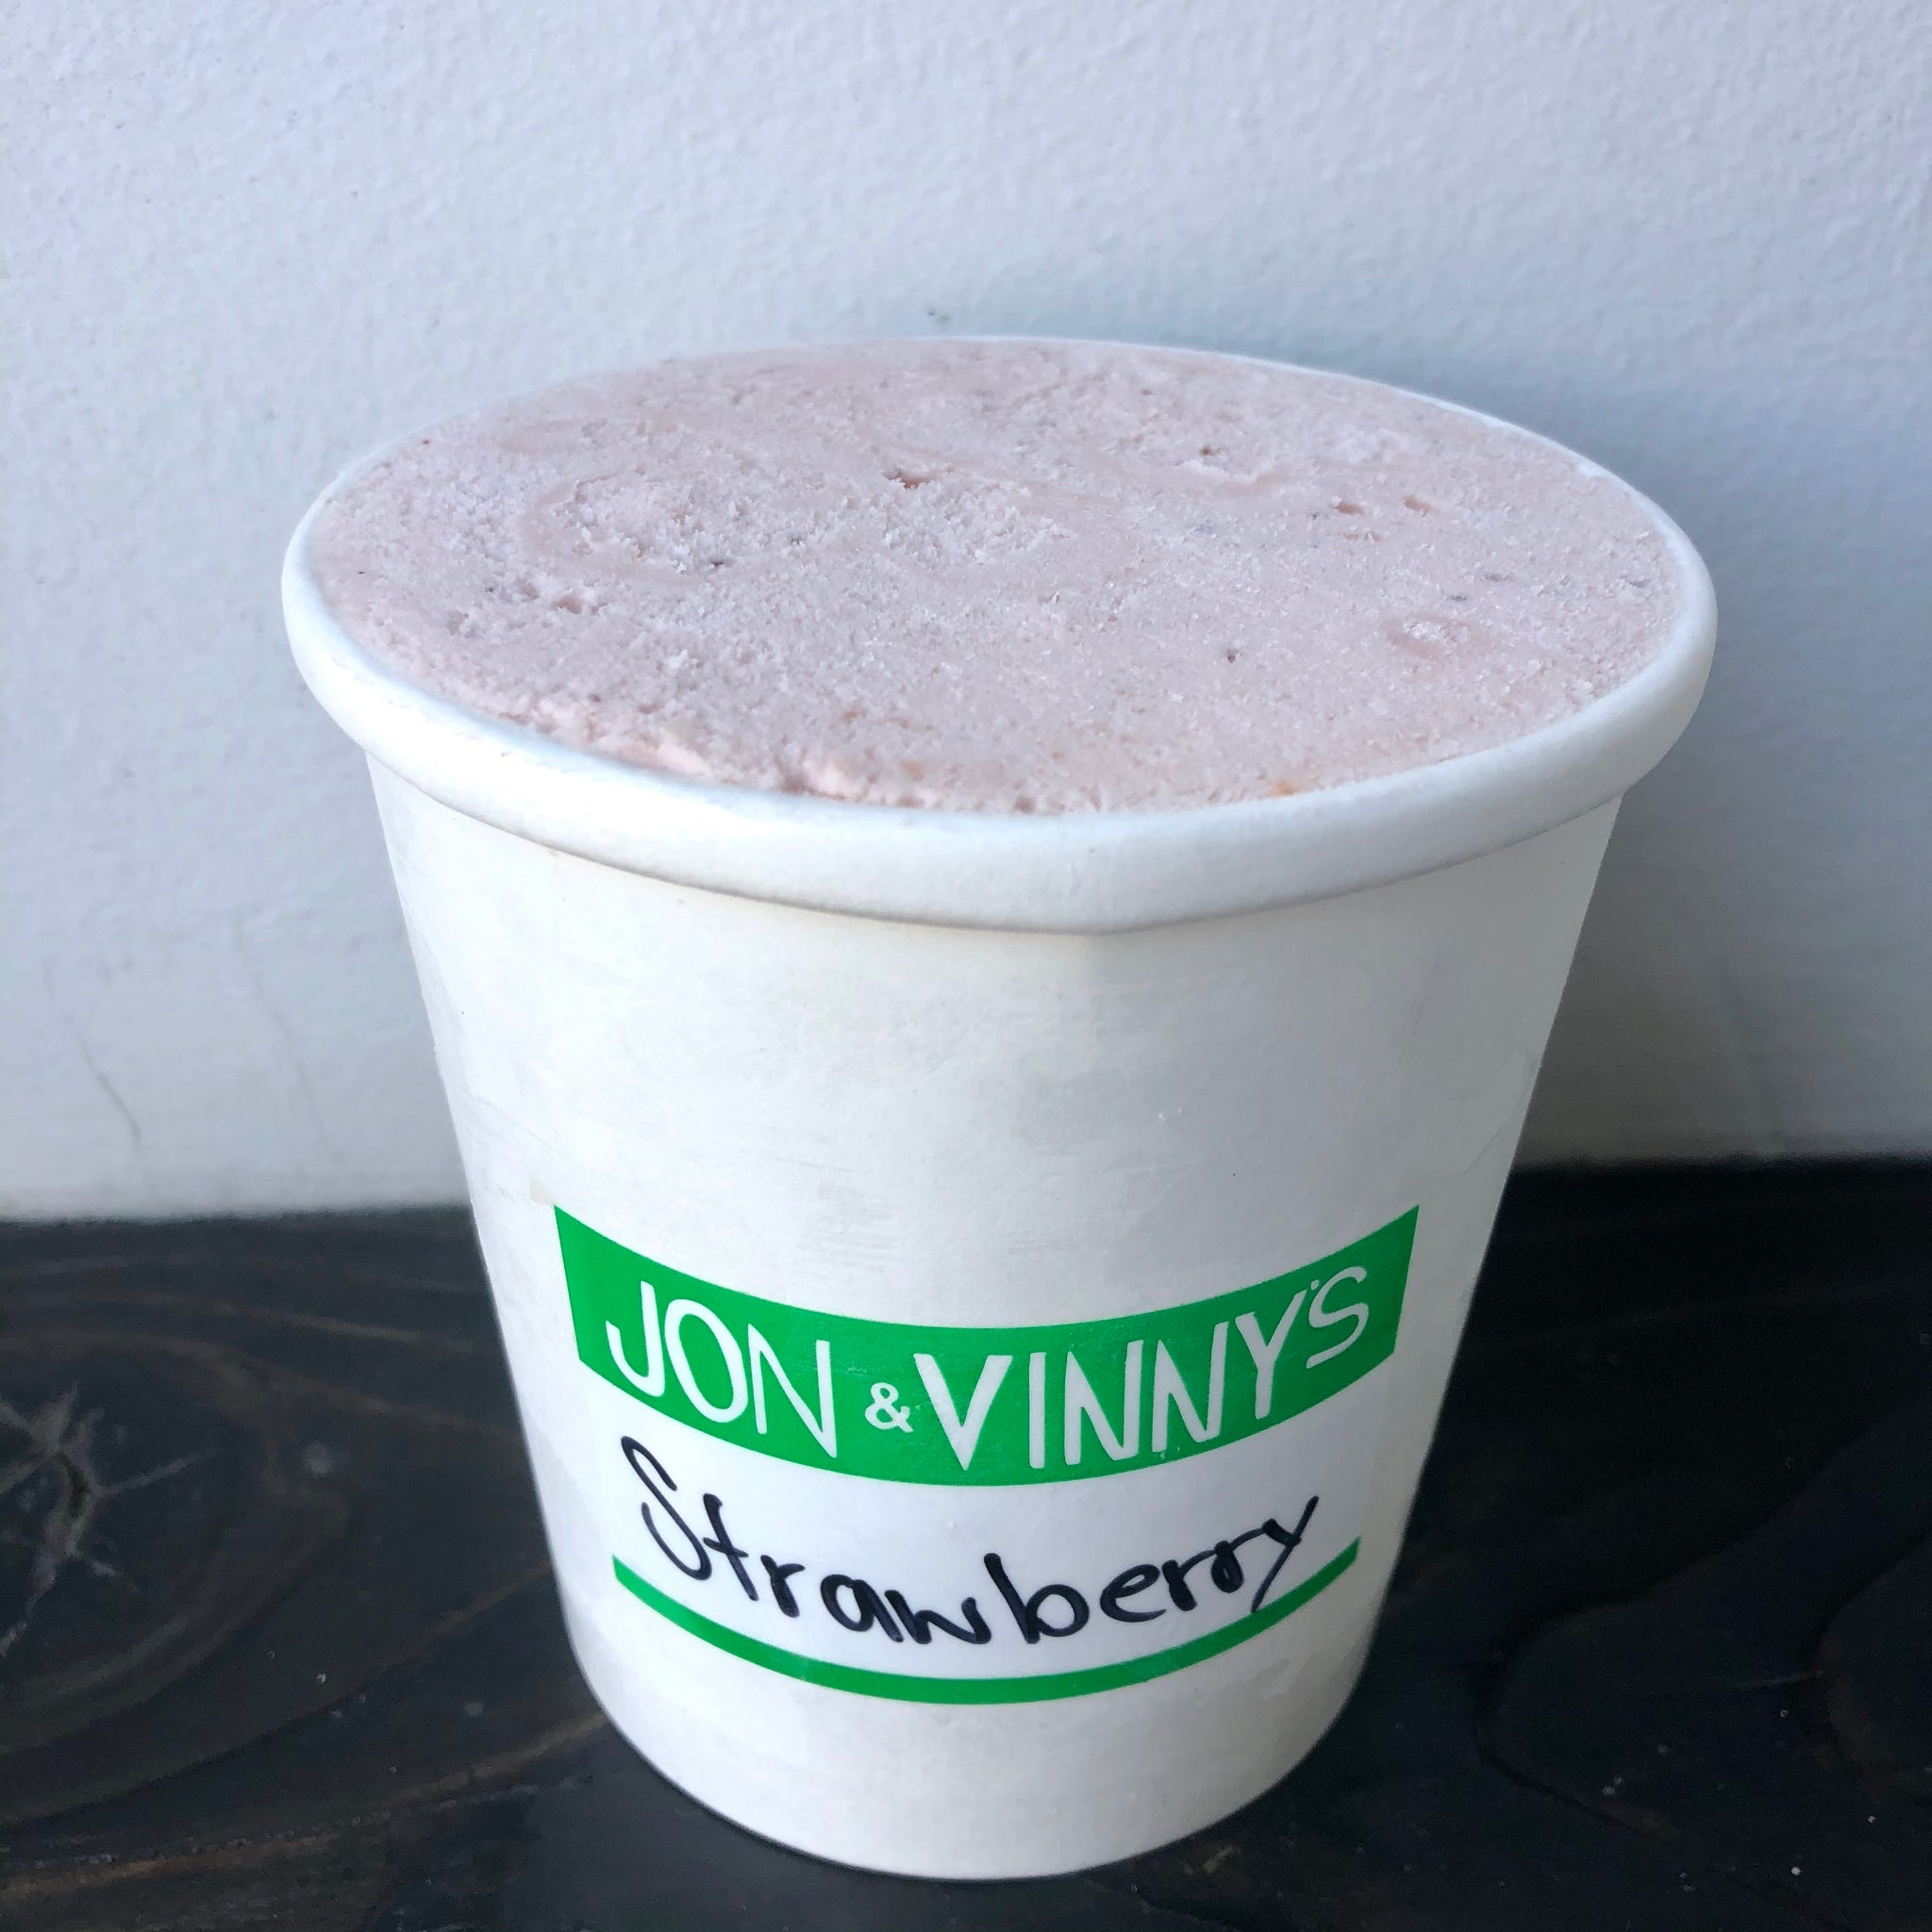 Jon and Vinny's Strawberry Ice Cream